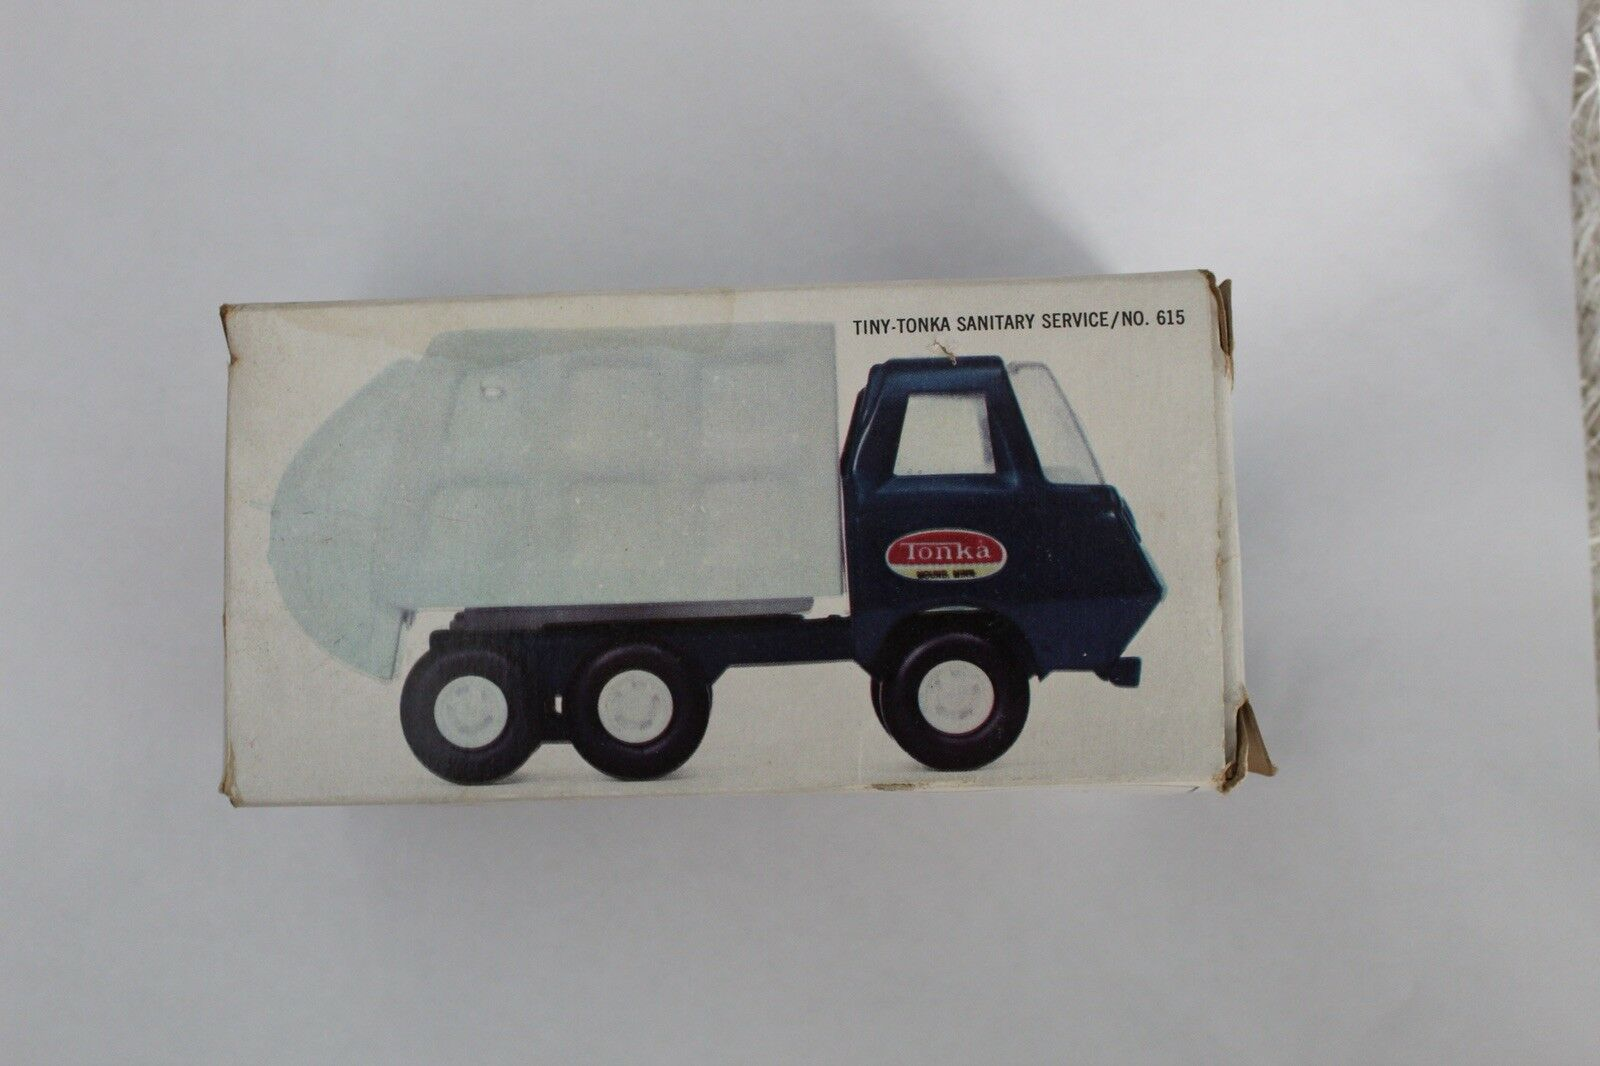 Vintage Tonka Sanitary Servive GarbageTruck No. 615 bluee and White Pressed Steel